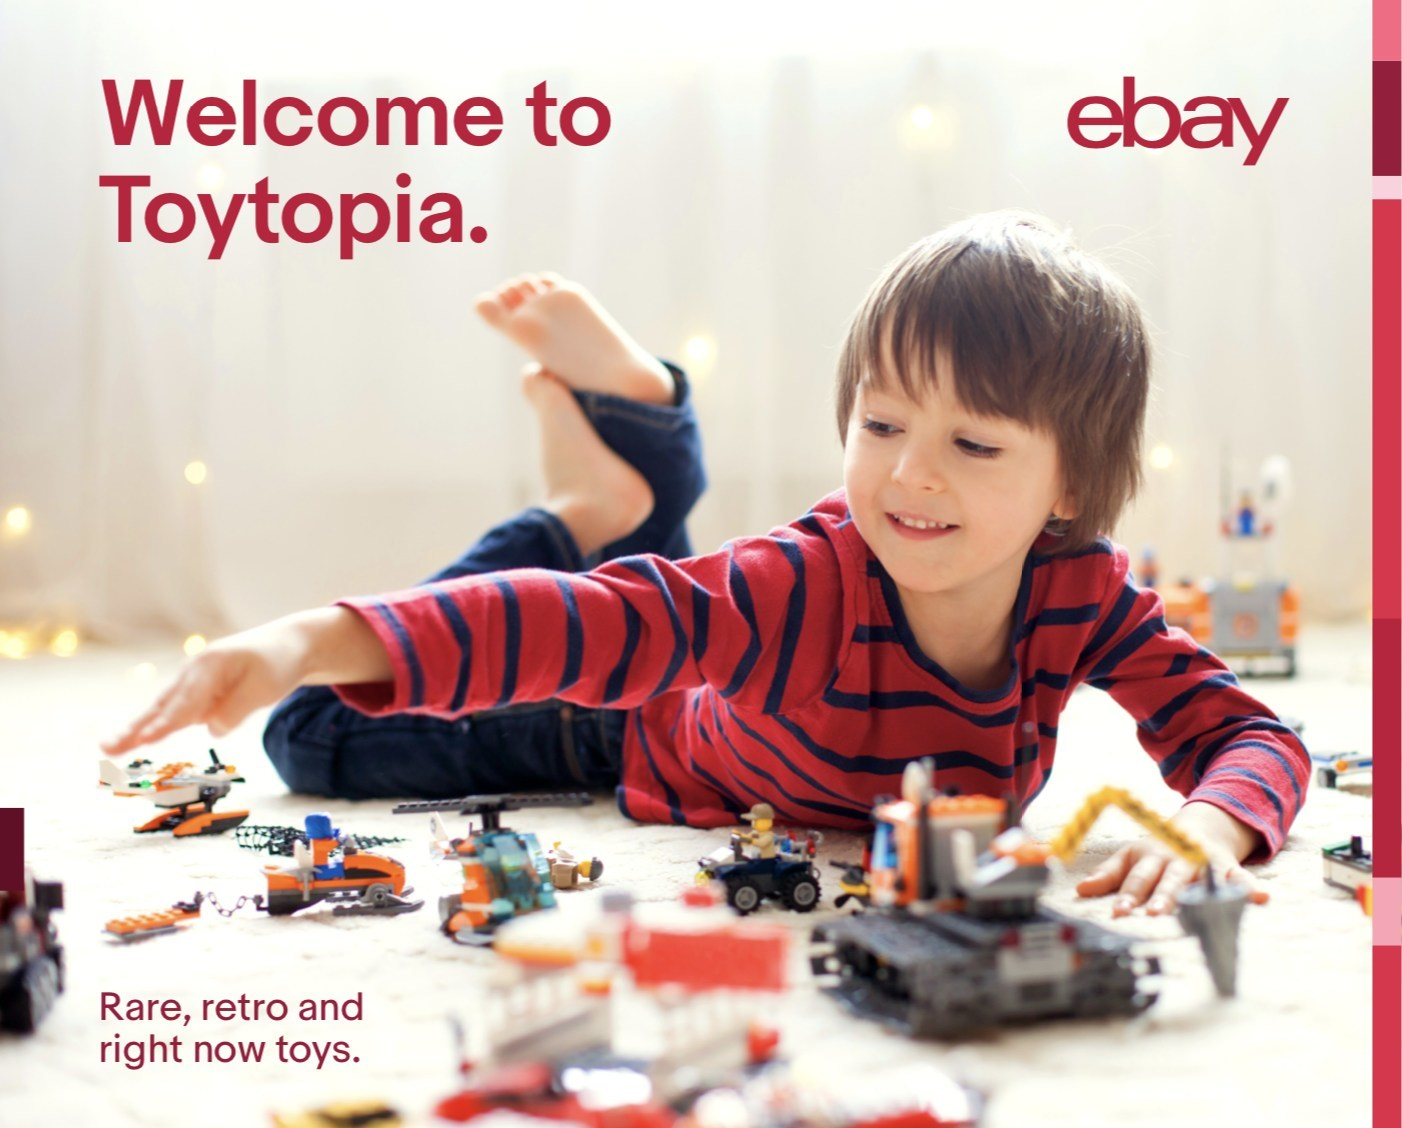 Ebay Releases Top Retro And Right Now Toys Trends For The Holidays Will Unveil Digital Toy Book